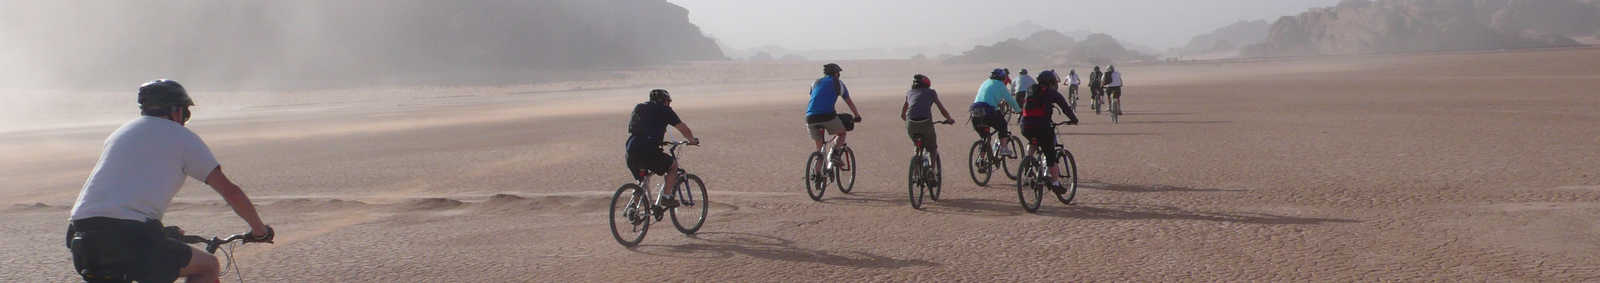 Cycling across the Wadi Rum desert